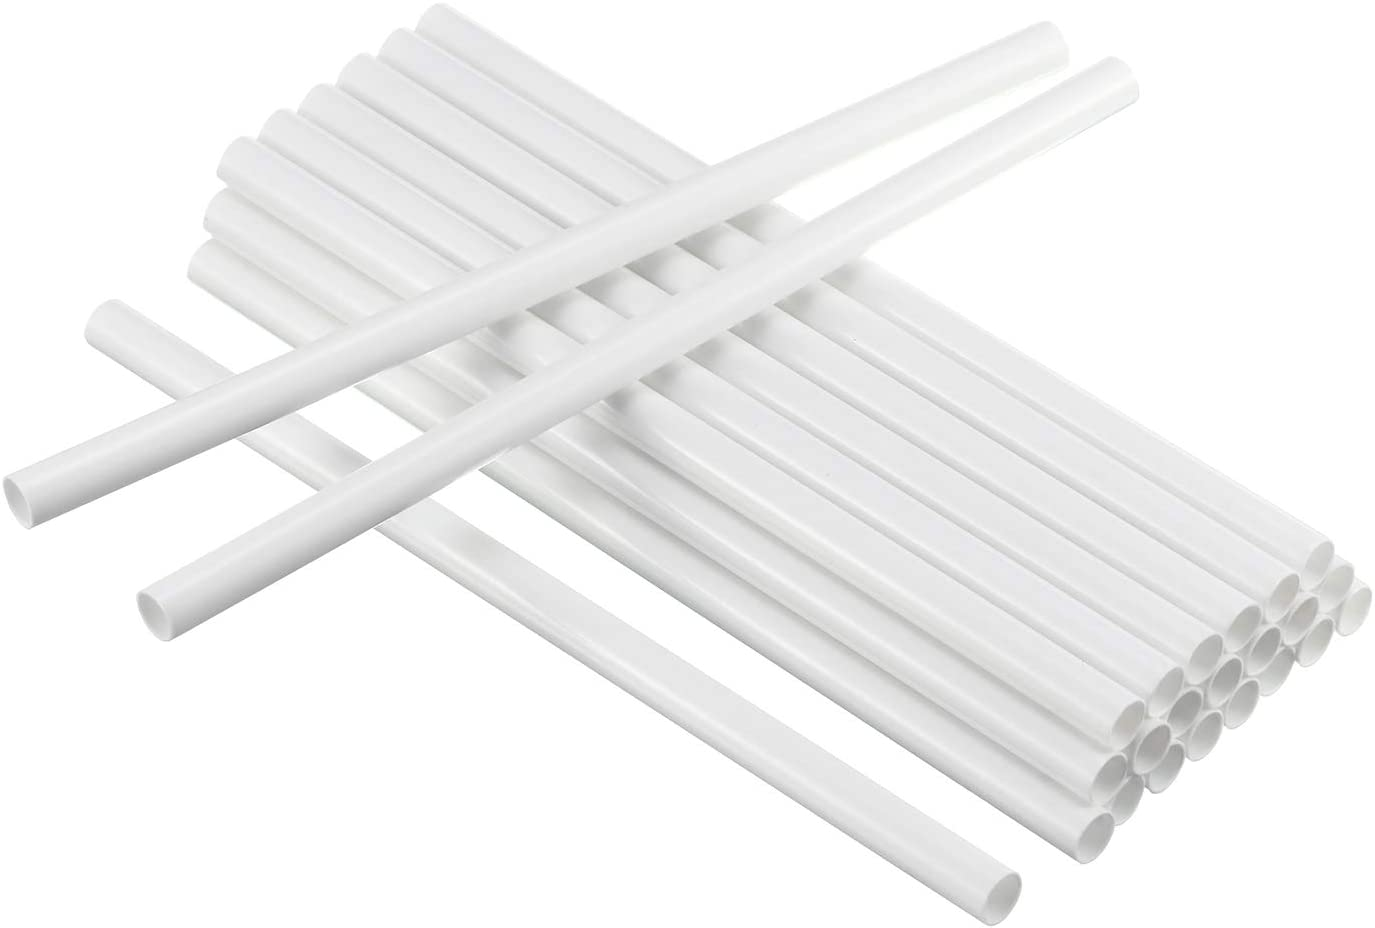 24 Pieces Plastic White Cake Dowel Rods for Tiered Cake Construction and Stacking (0.4 Inch Diameter 12 Inch Length)